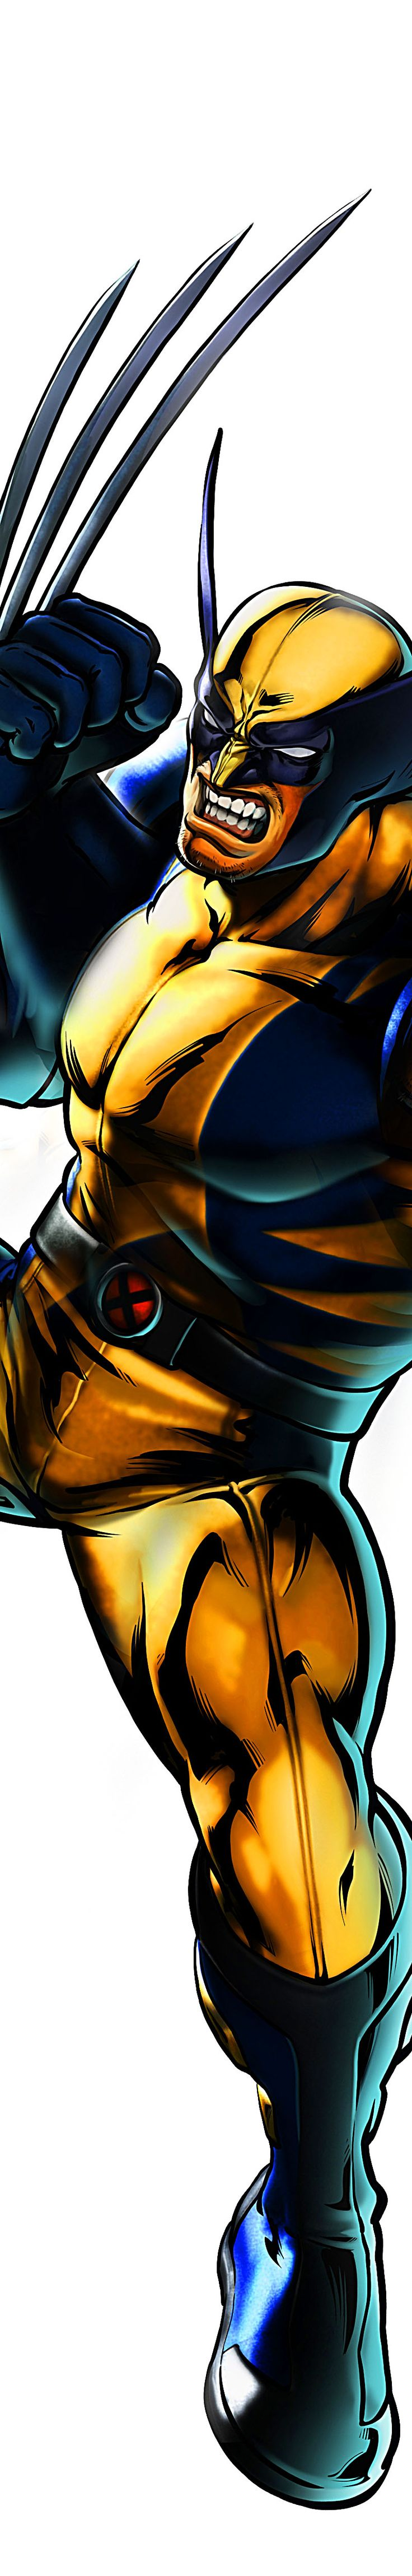 17 Best Images About Wolverine On Pinterest Enemy Of The Color Your Own Wolverine